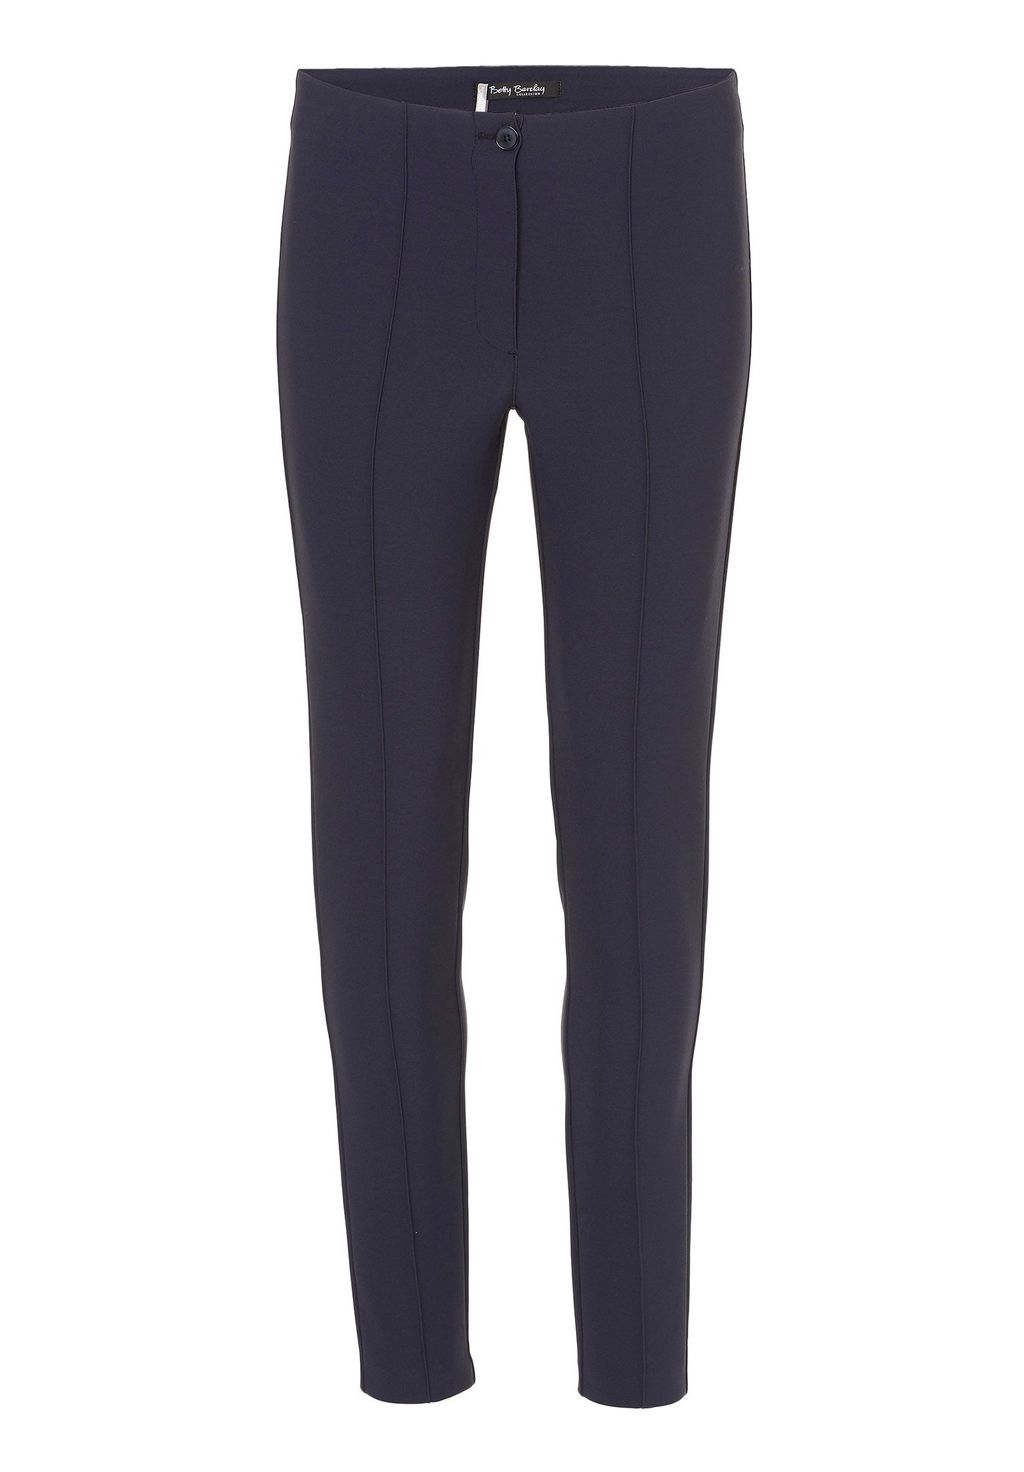 Tailored Stretch Crepe Trousers, Navy - length: standard; pattern: plain; waist: mid/regular rise; predominant colour: navy; occasions: casual, creative work; fibres: polyester/polyamide - 100%; texture group: crepes; fit: slim leg; pattern type: fabric; style: standard; season: a/w 2015; wardrobe: basic